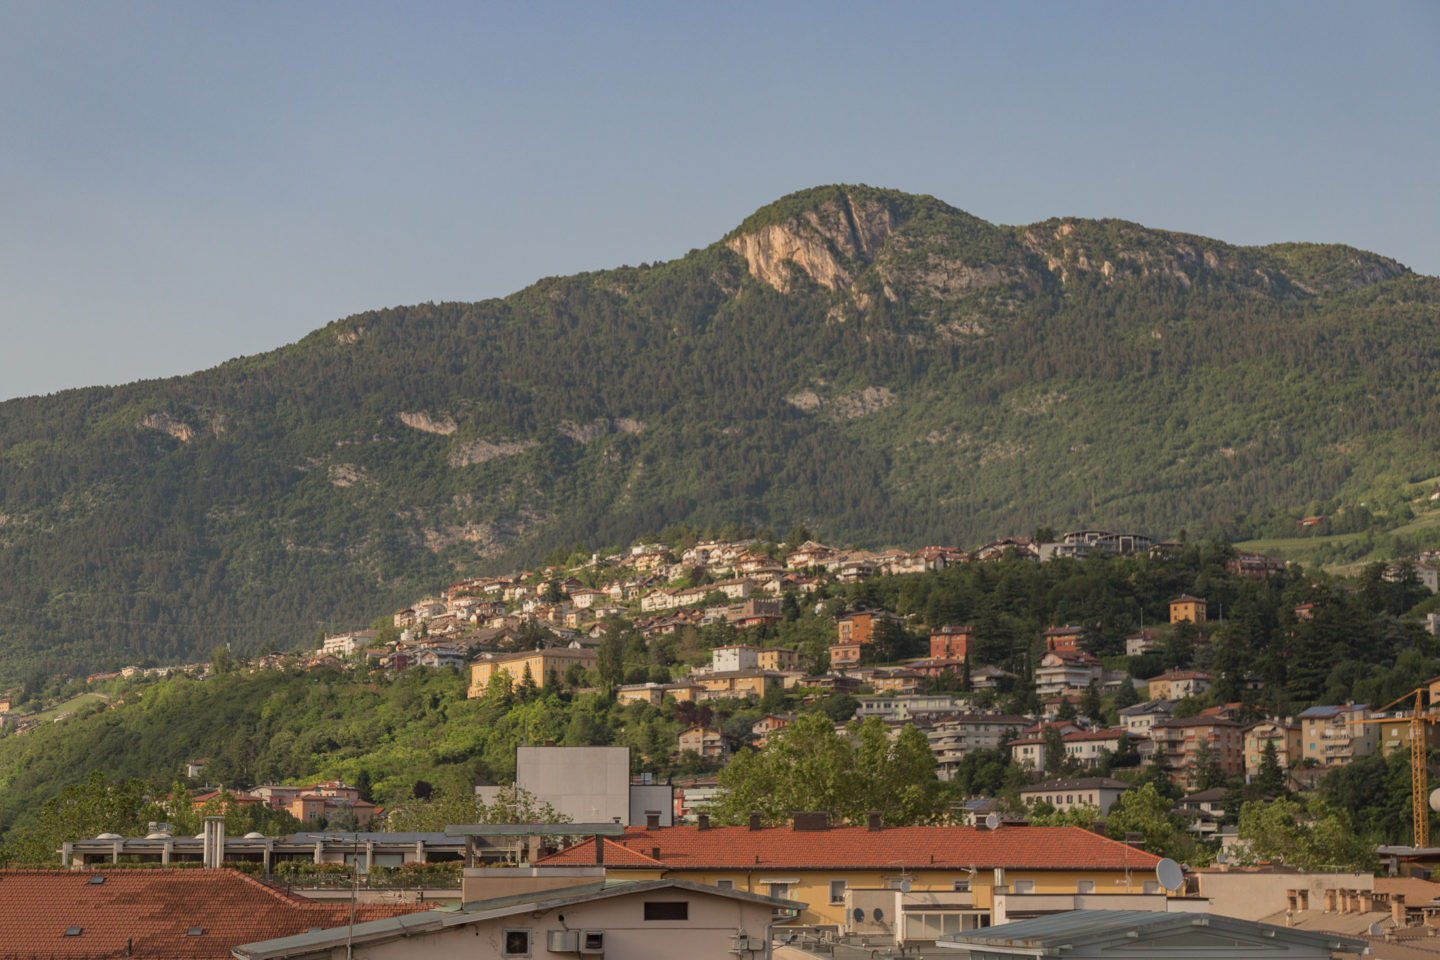 city scape view with mountains and small buildings